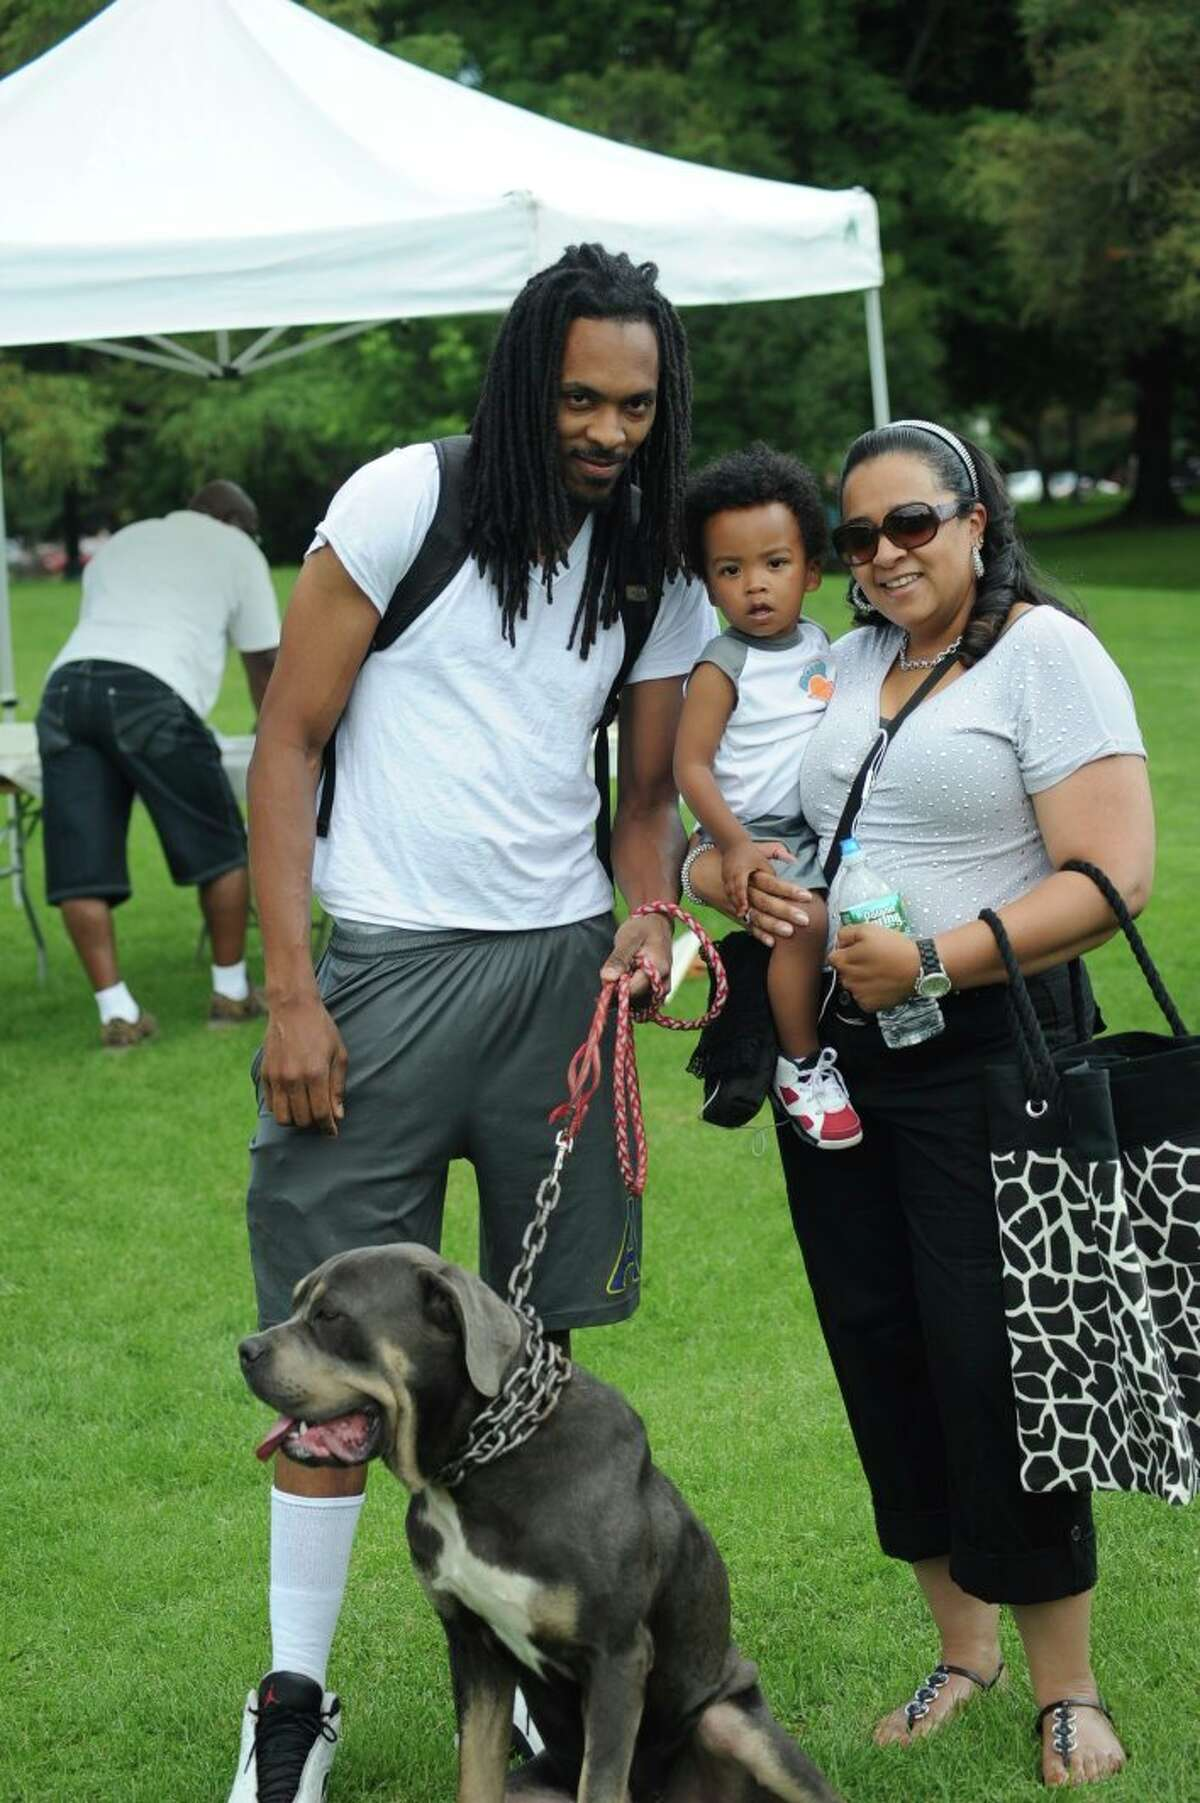 Were you Seen at the 10th Annual Juneteenth Celebration at Washington Park in Albany on Sunday, June 22, 2014?